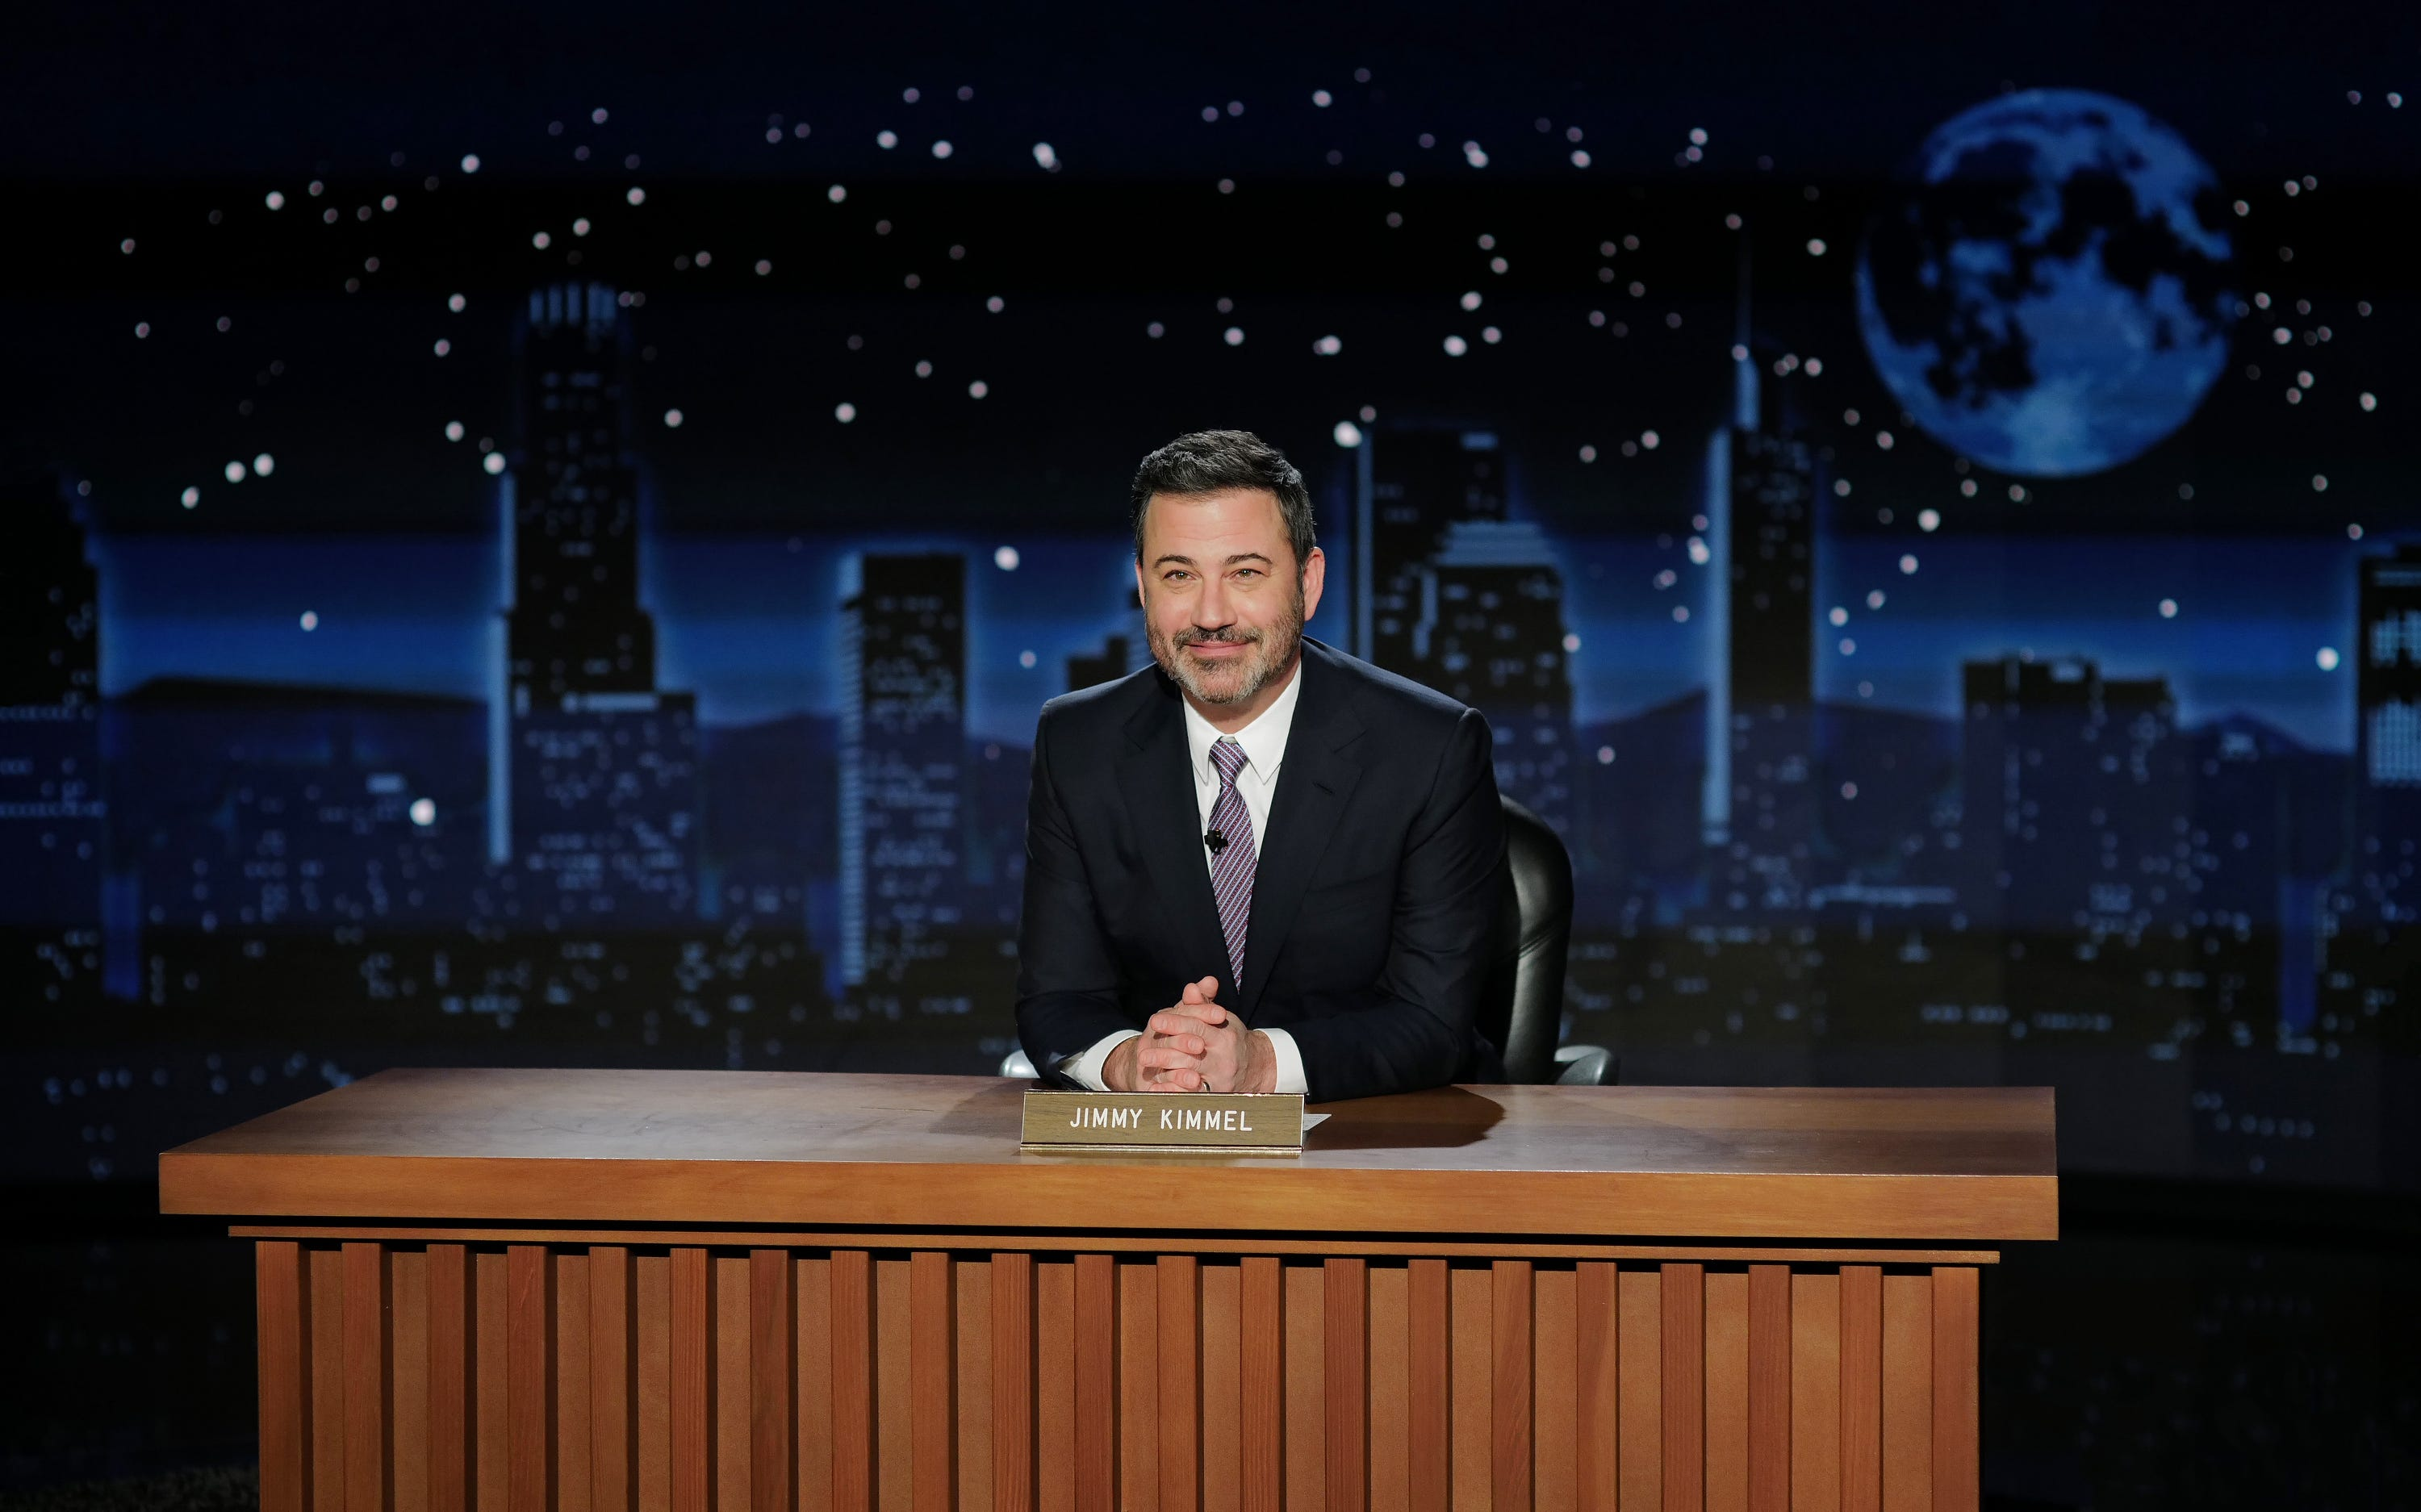 Kimmel finds seemingly any excuse to mention Trump